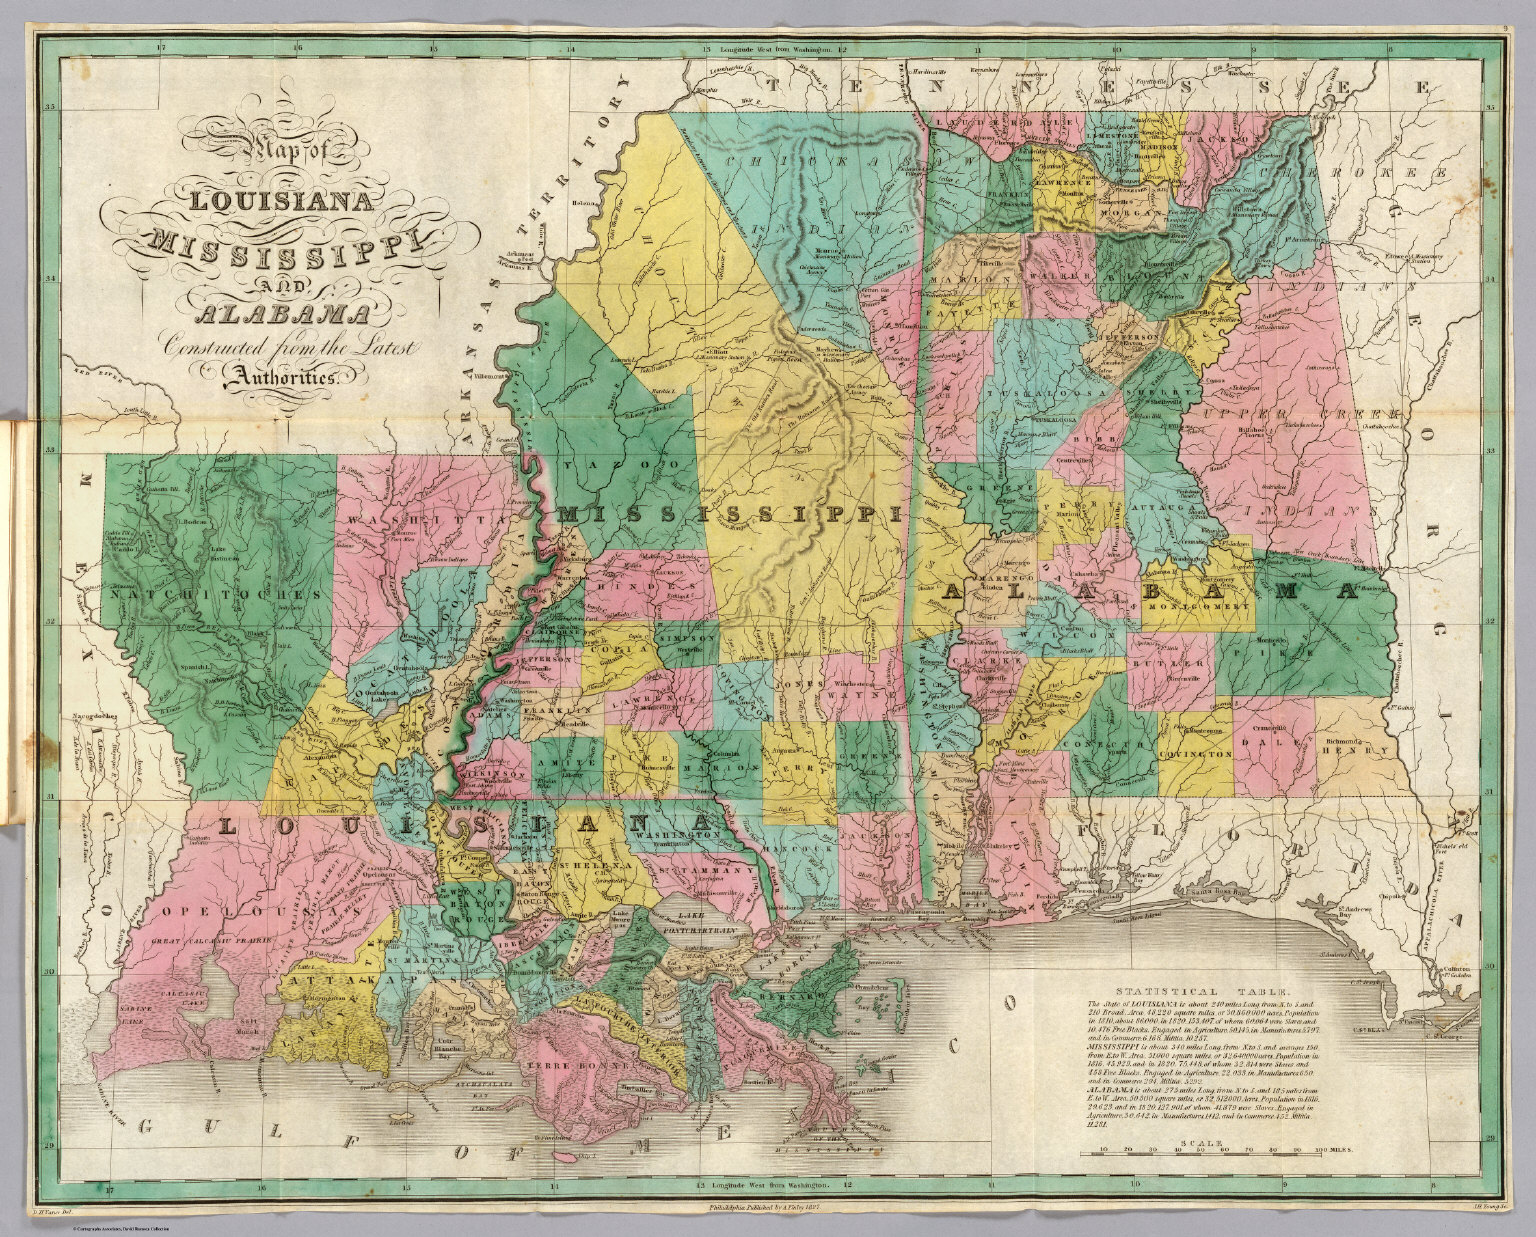 Map Usa Louisiana%0A Louisiana Mississippi Alabama David Rumsey Historical Map